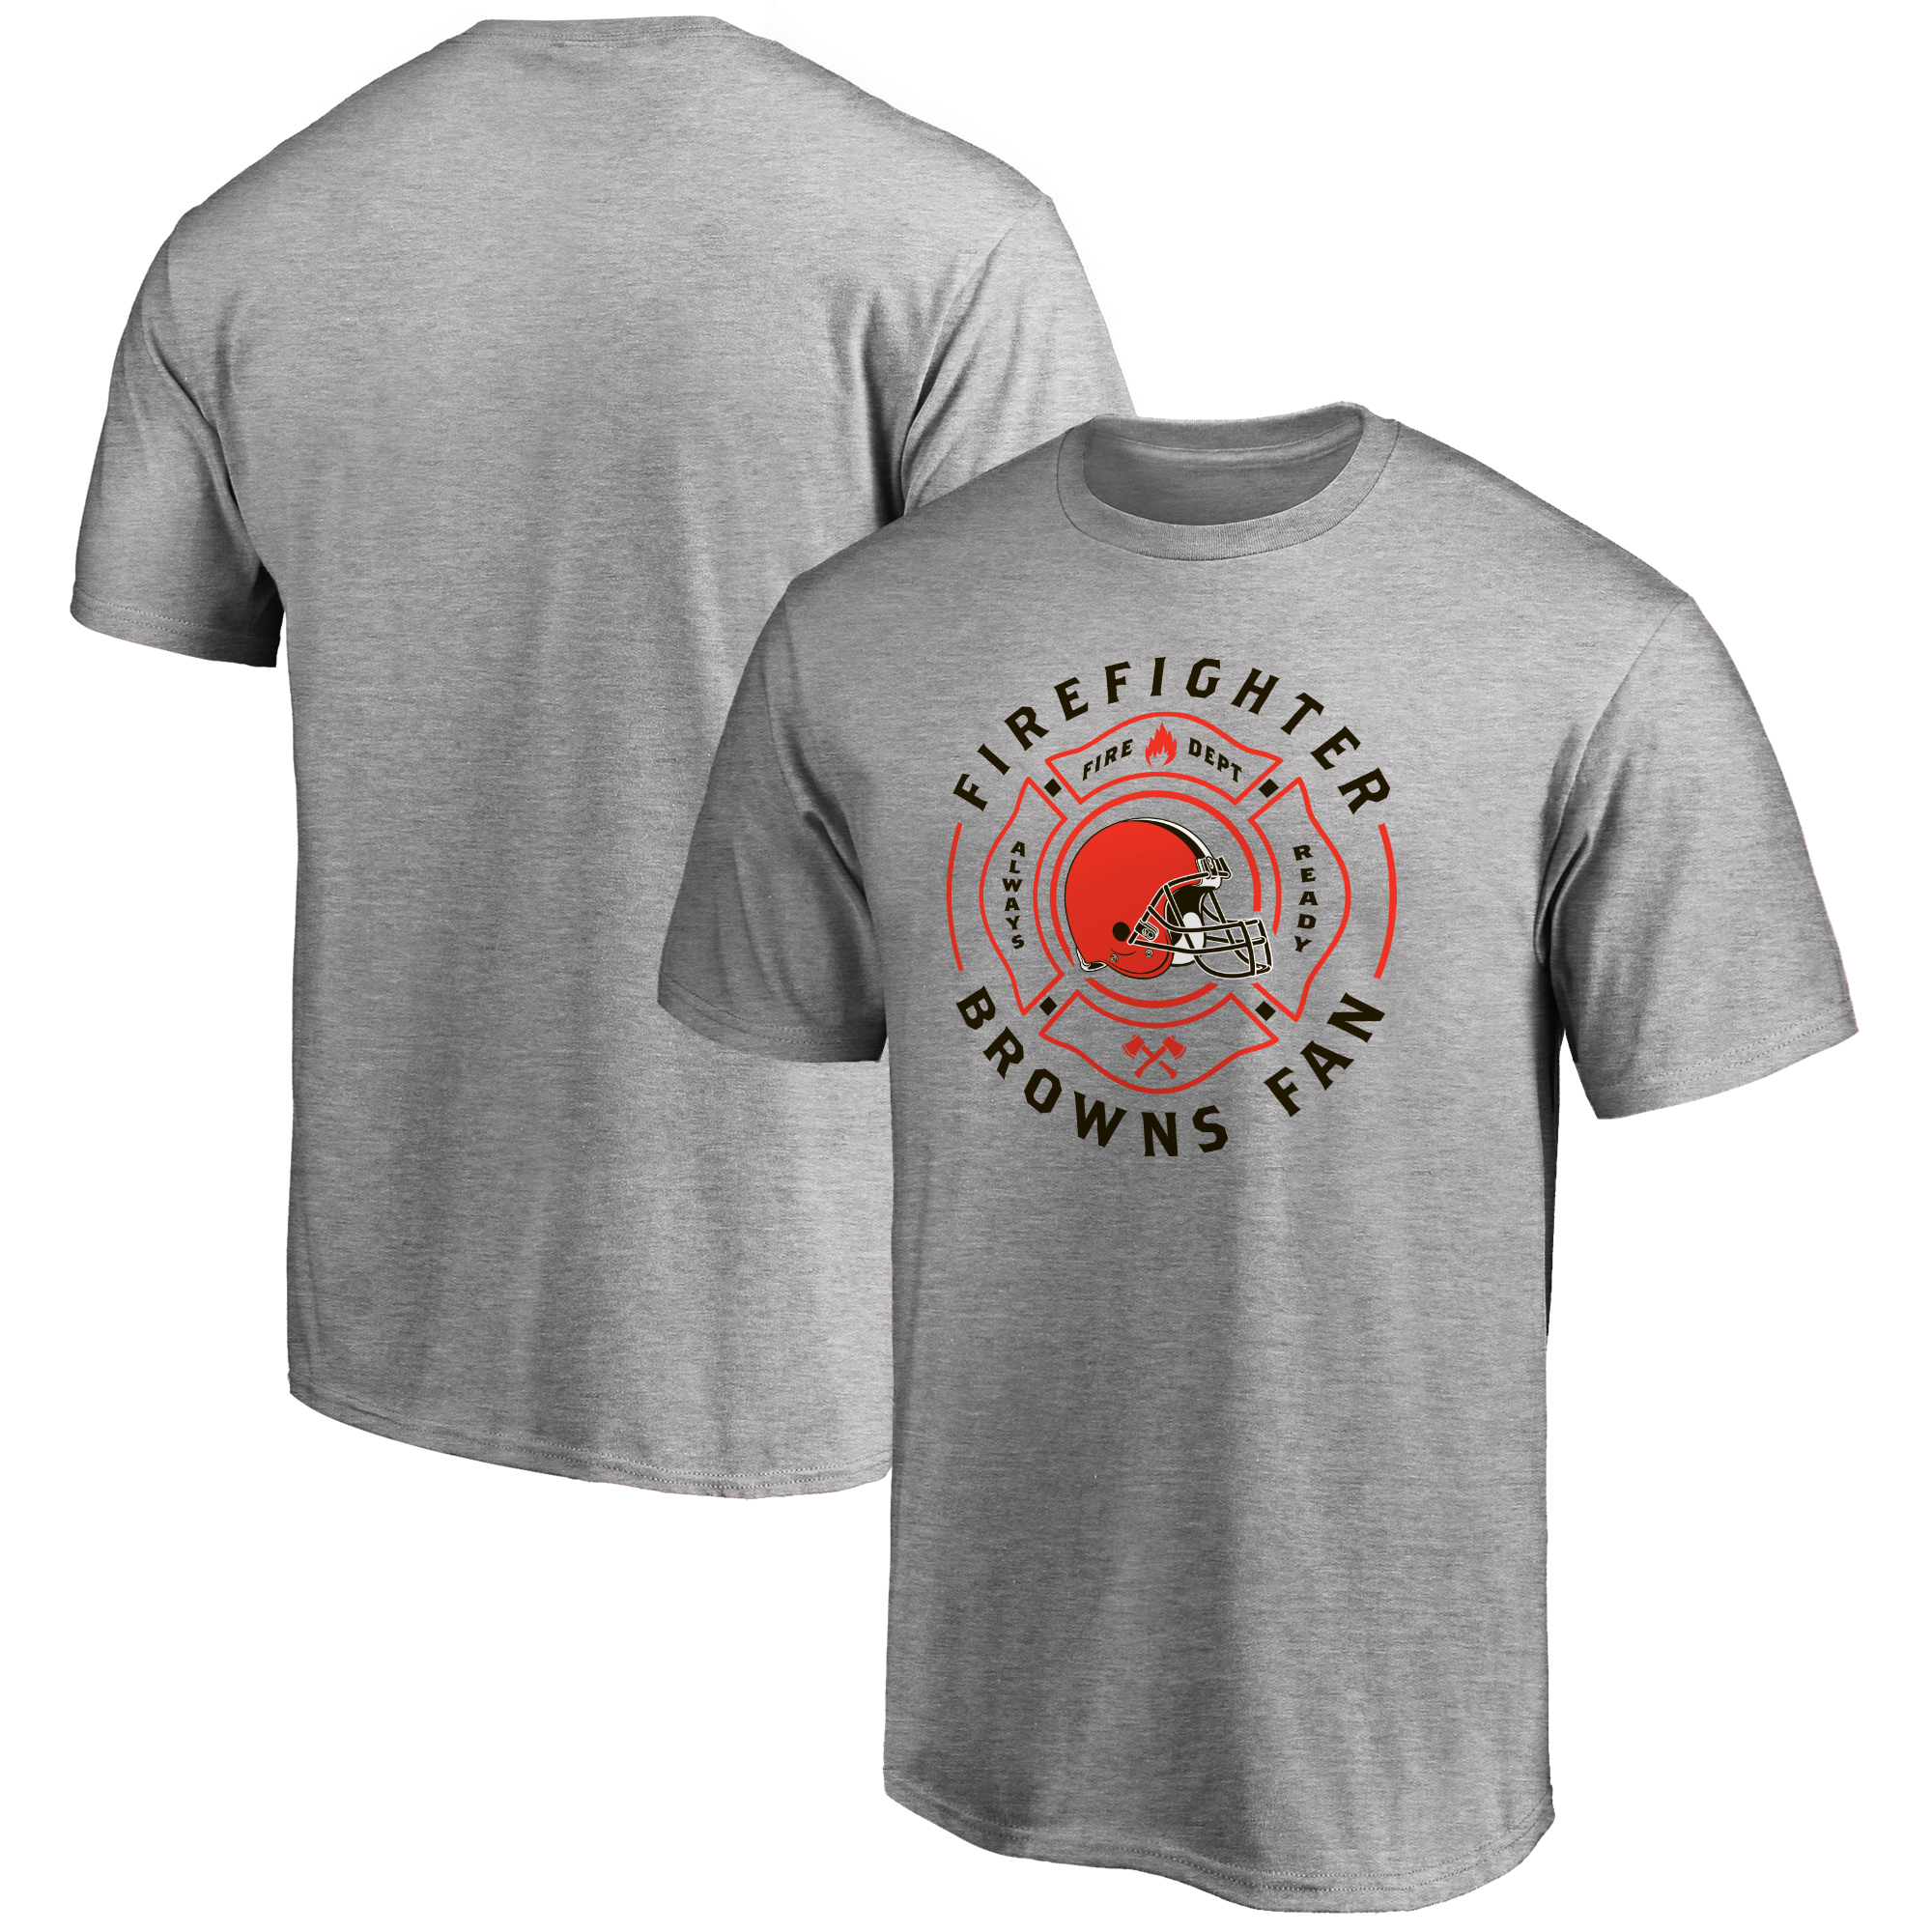 Cleveland Browns NFL Pro Line Firefighter T-Shirt - Athletic Heather